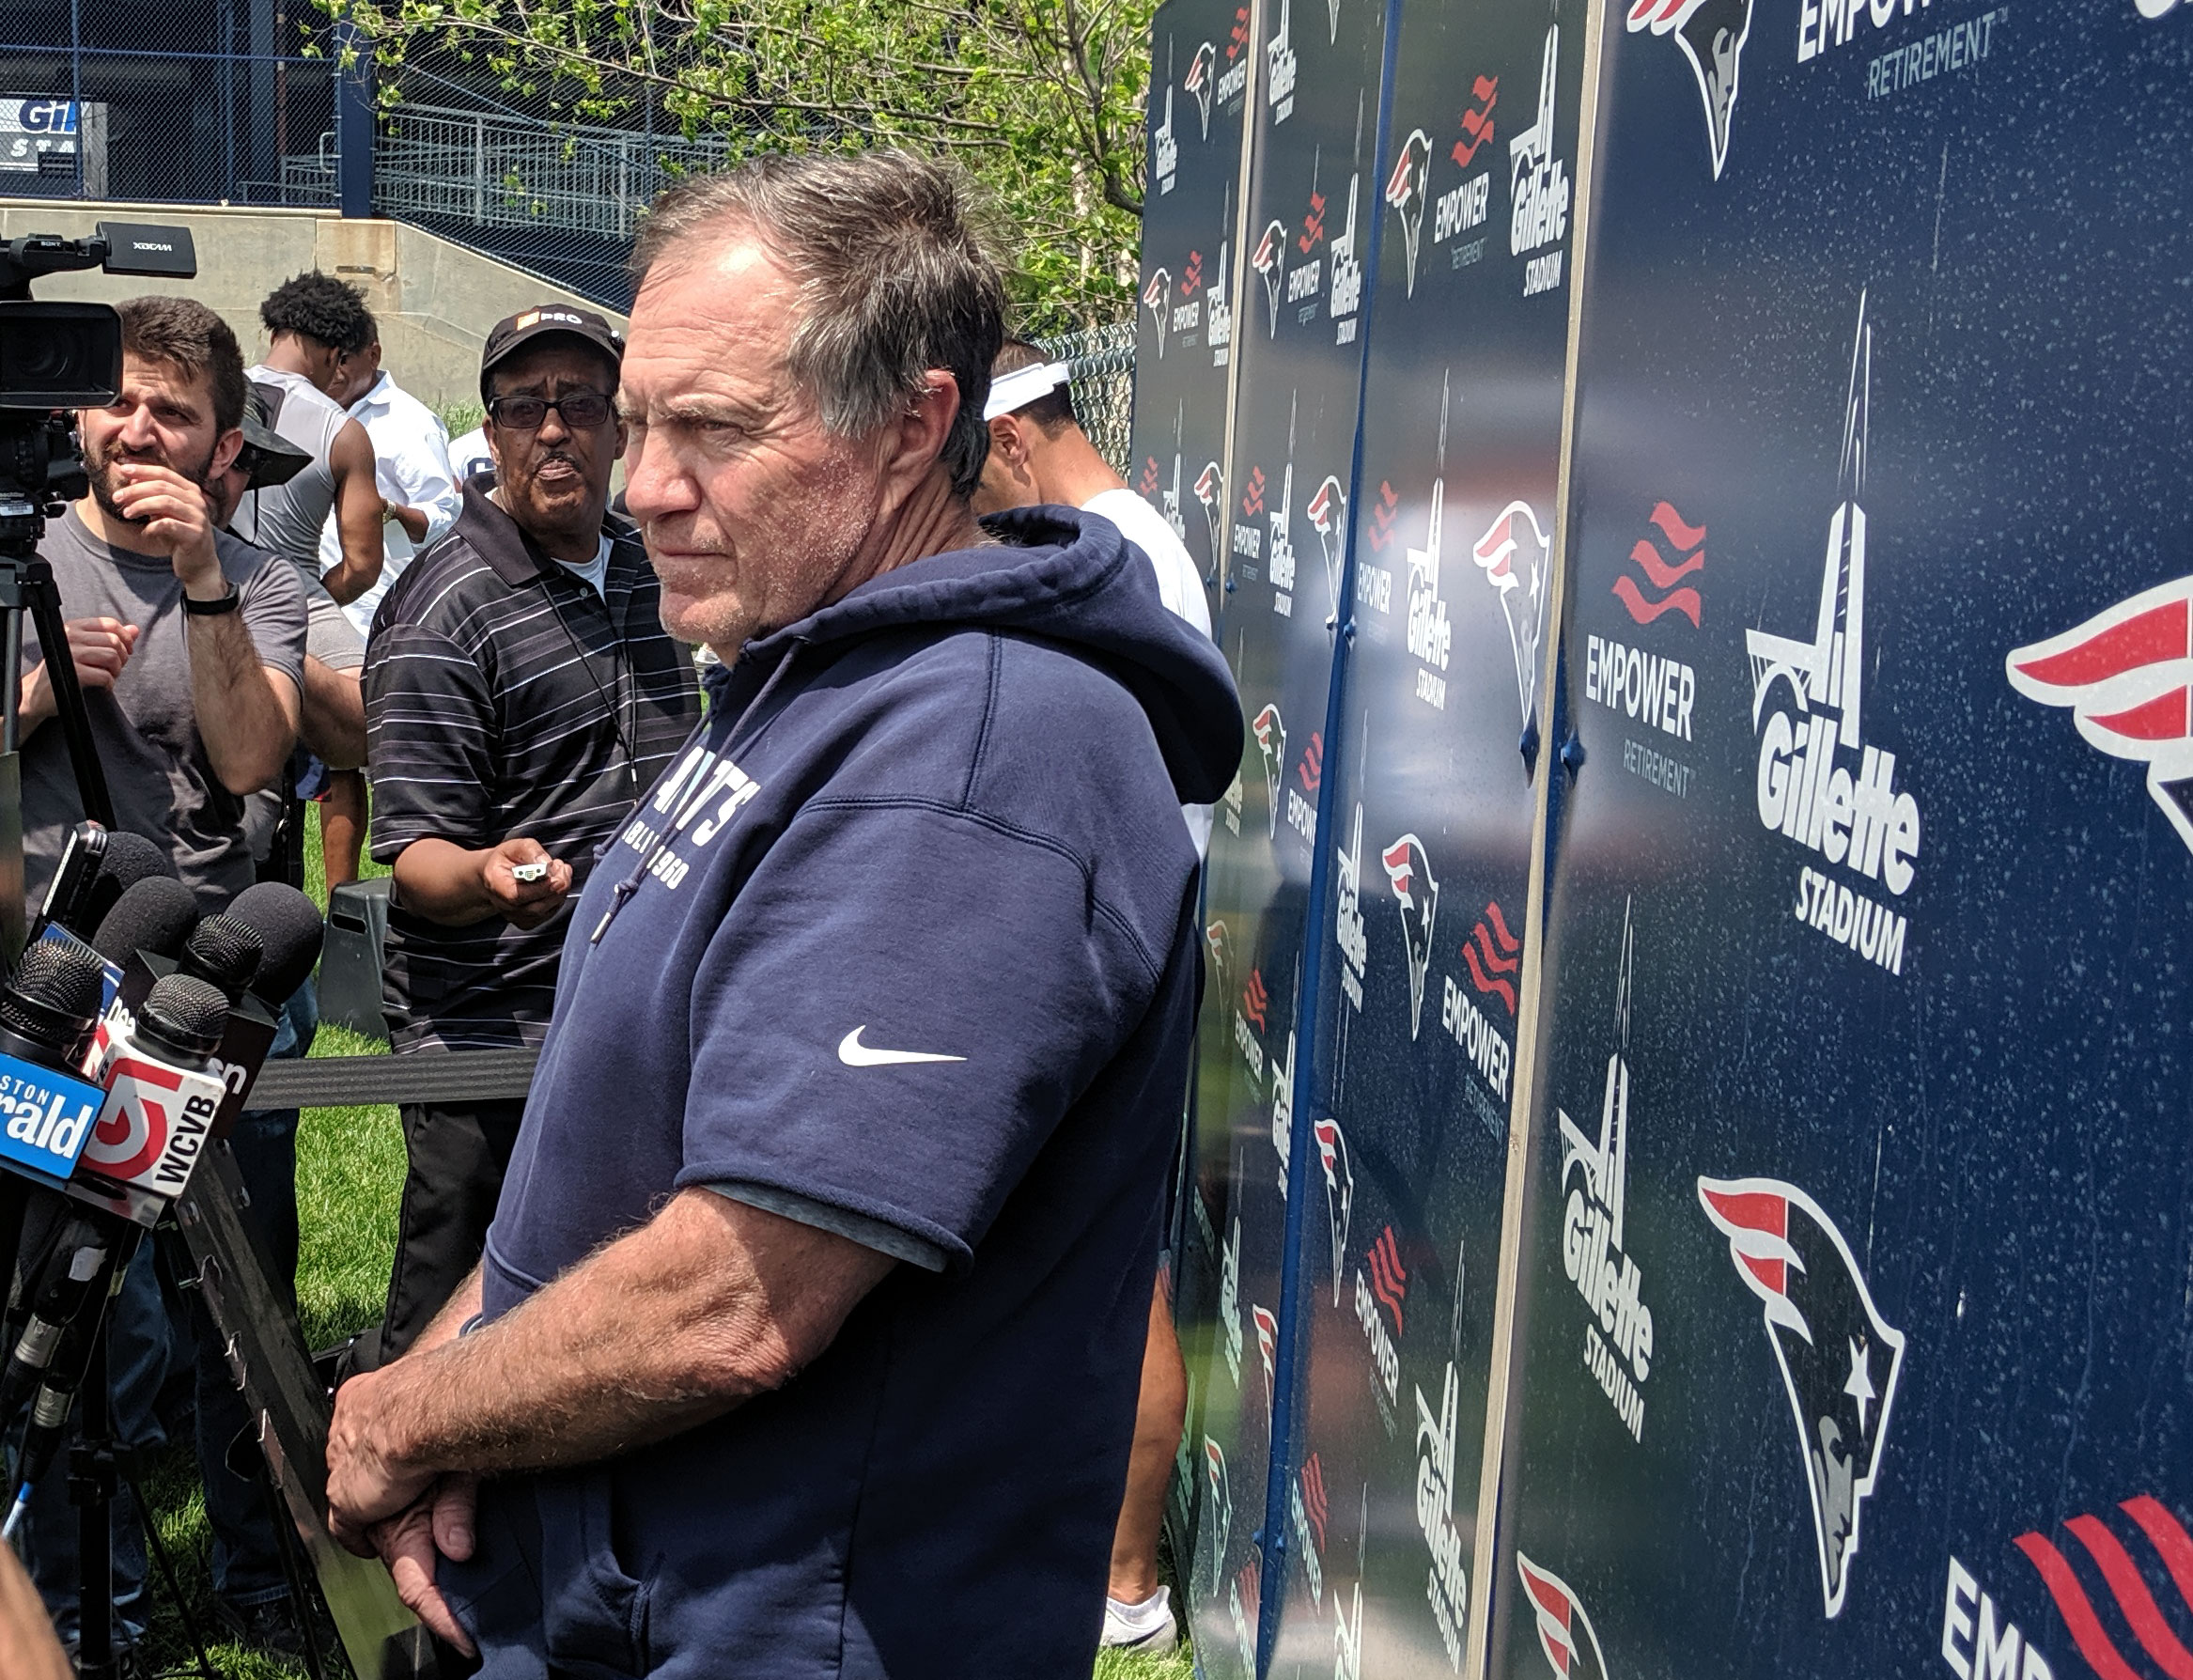 Bill Belichick to receive Medal of Freedom from President Trump, reports say